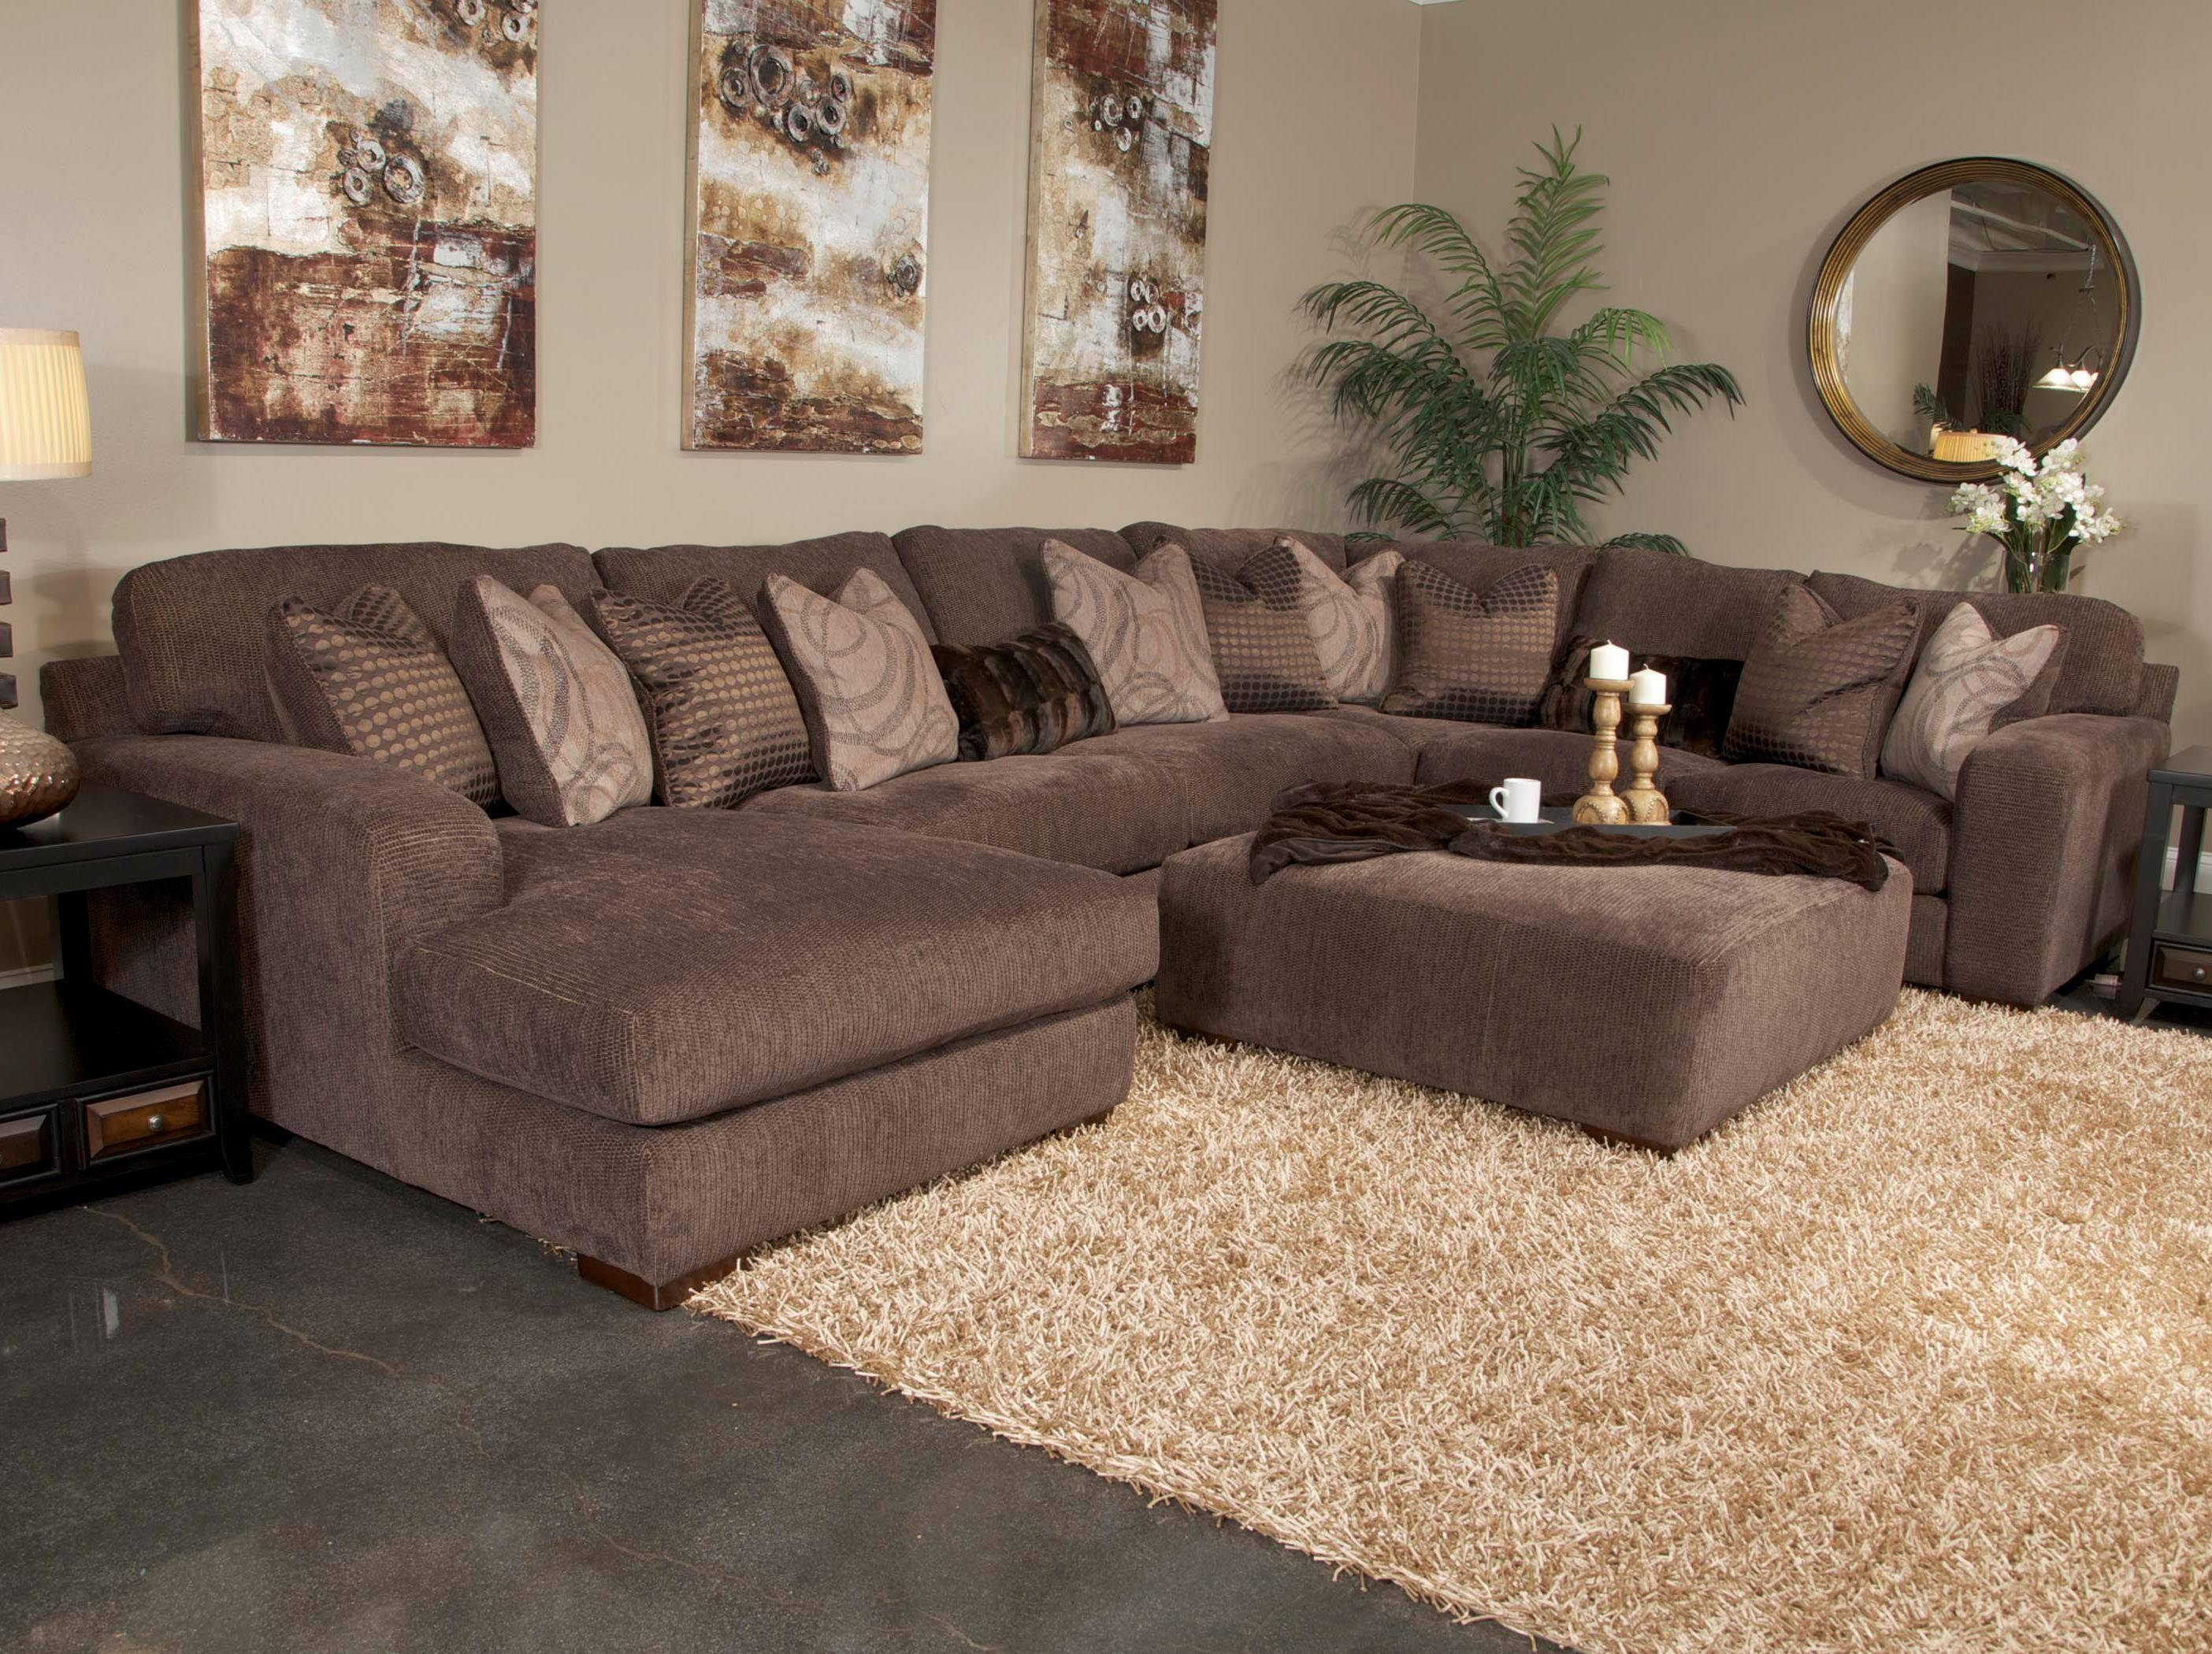 Five Seat Sectional Sofa With Chaise On Left Sidejackson for 2 Seat Sectional Sofas (Image 13 of 30)